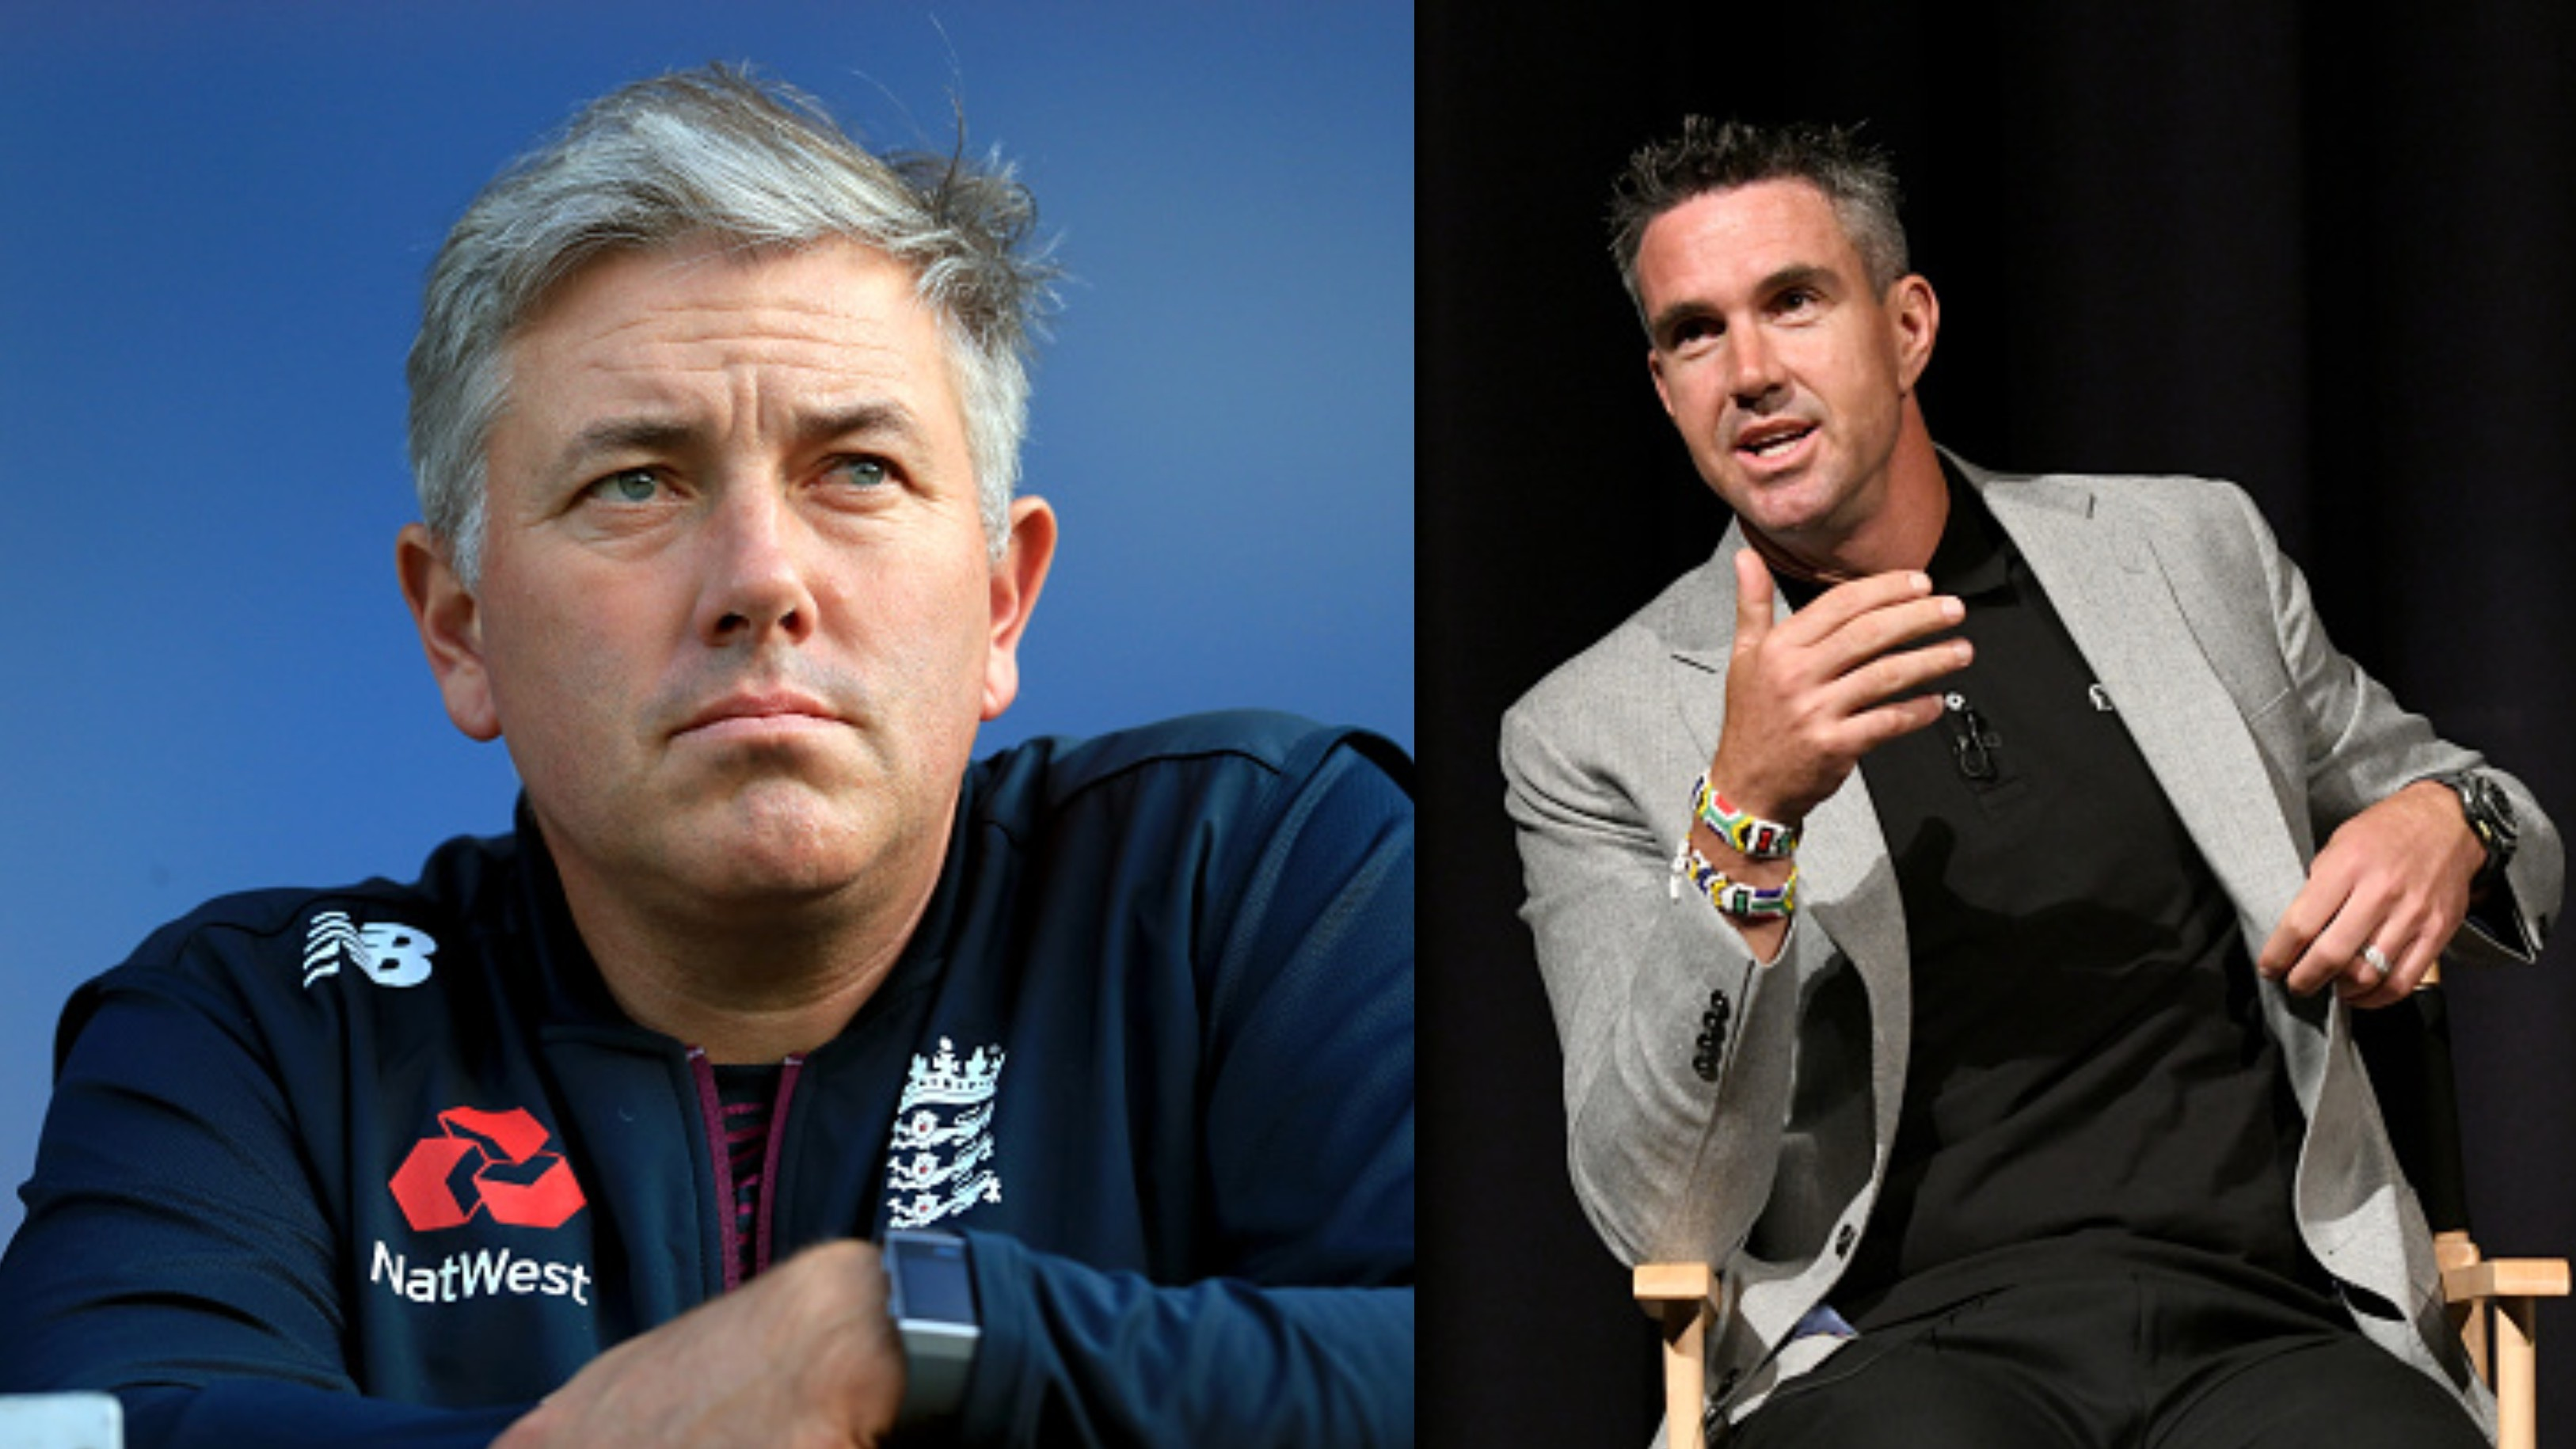 Kevin Pietersen calls ECB's appointment of Chris Silverwood as England coach 'Incredibly brave'